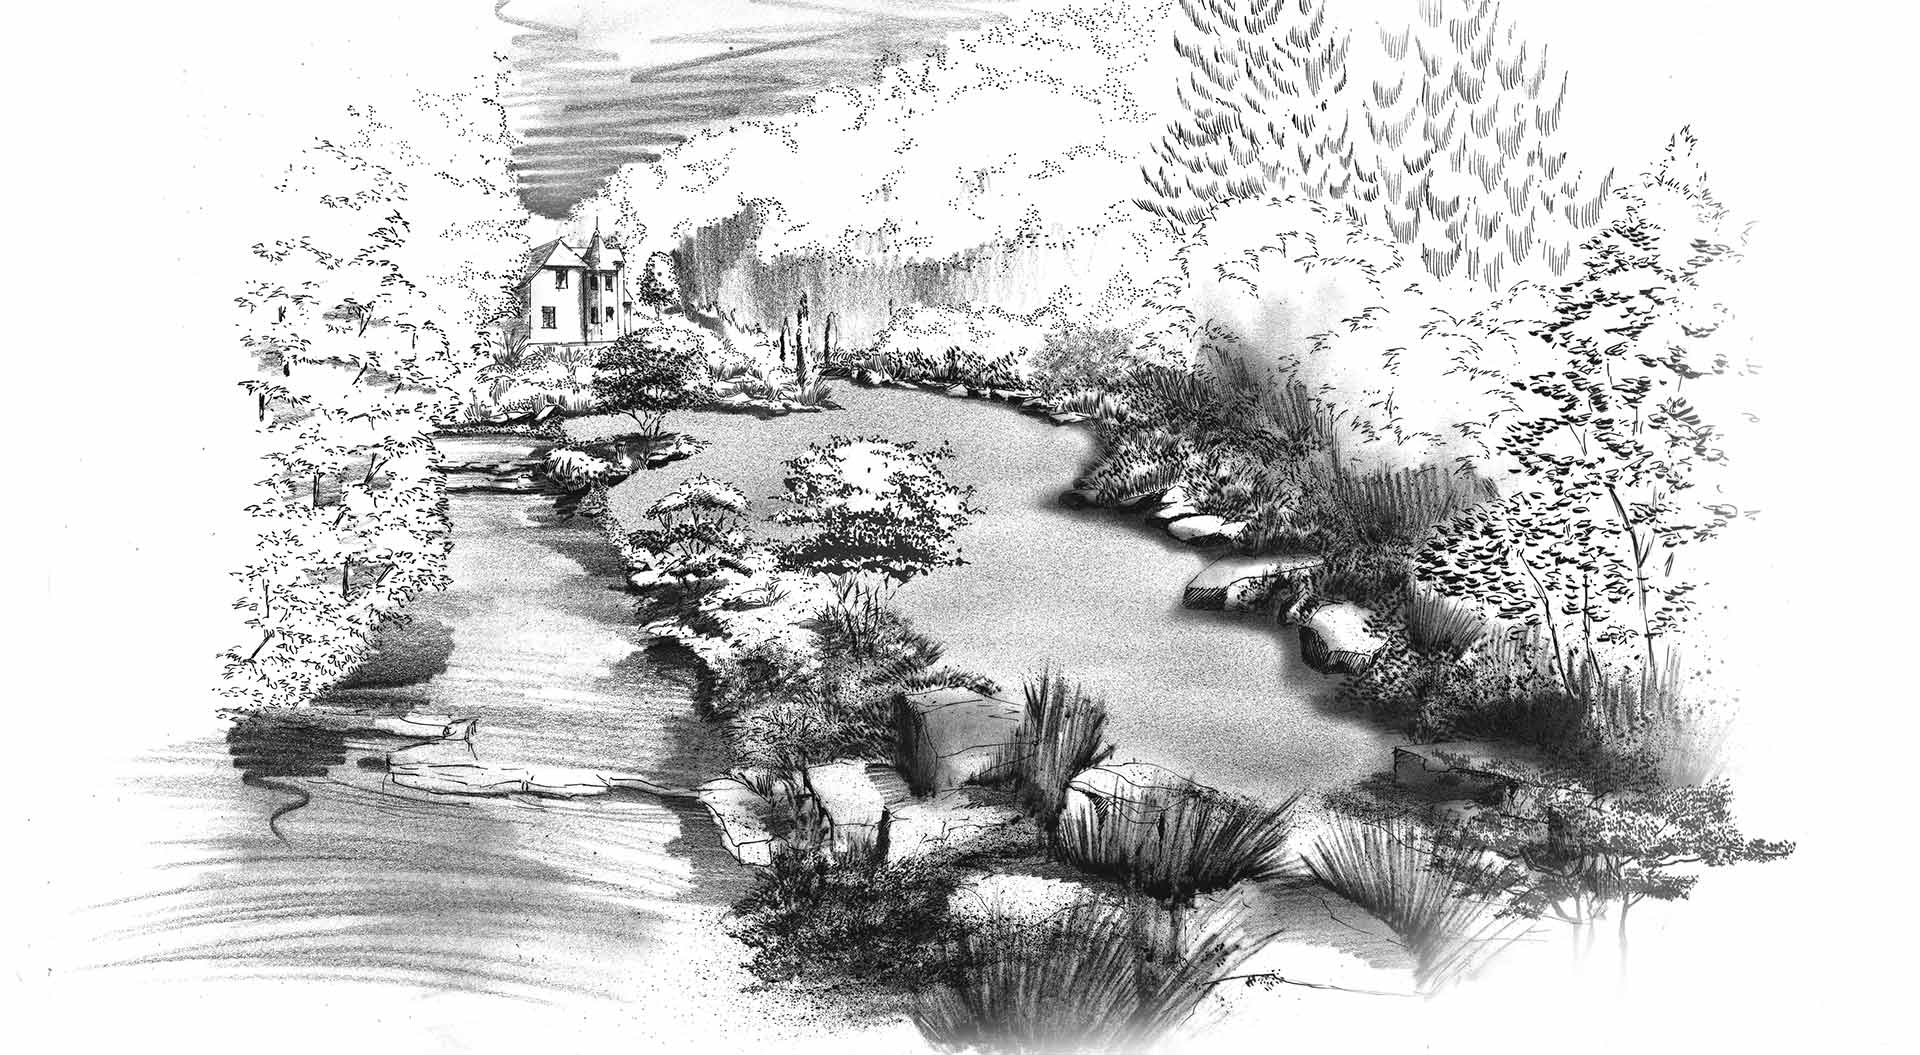 Hand-drawn sketch of a company garden